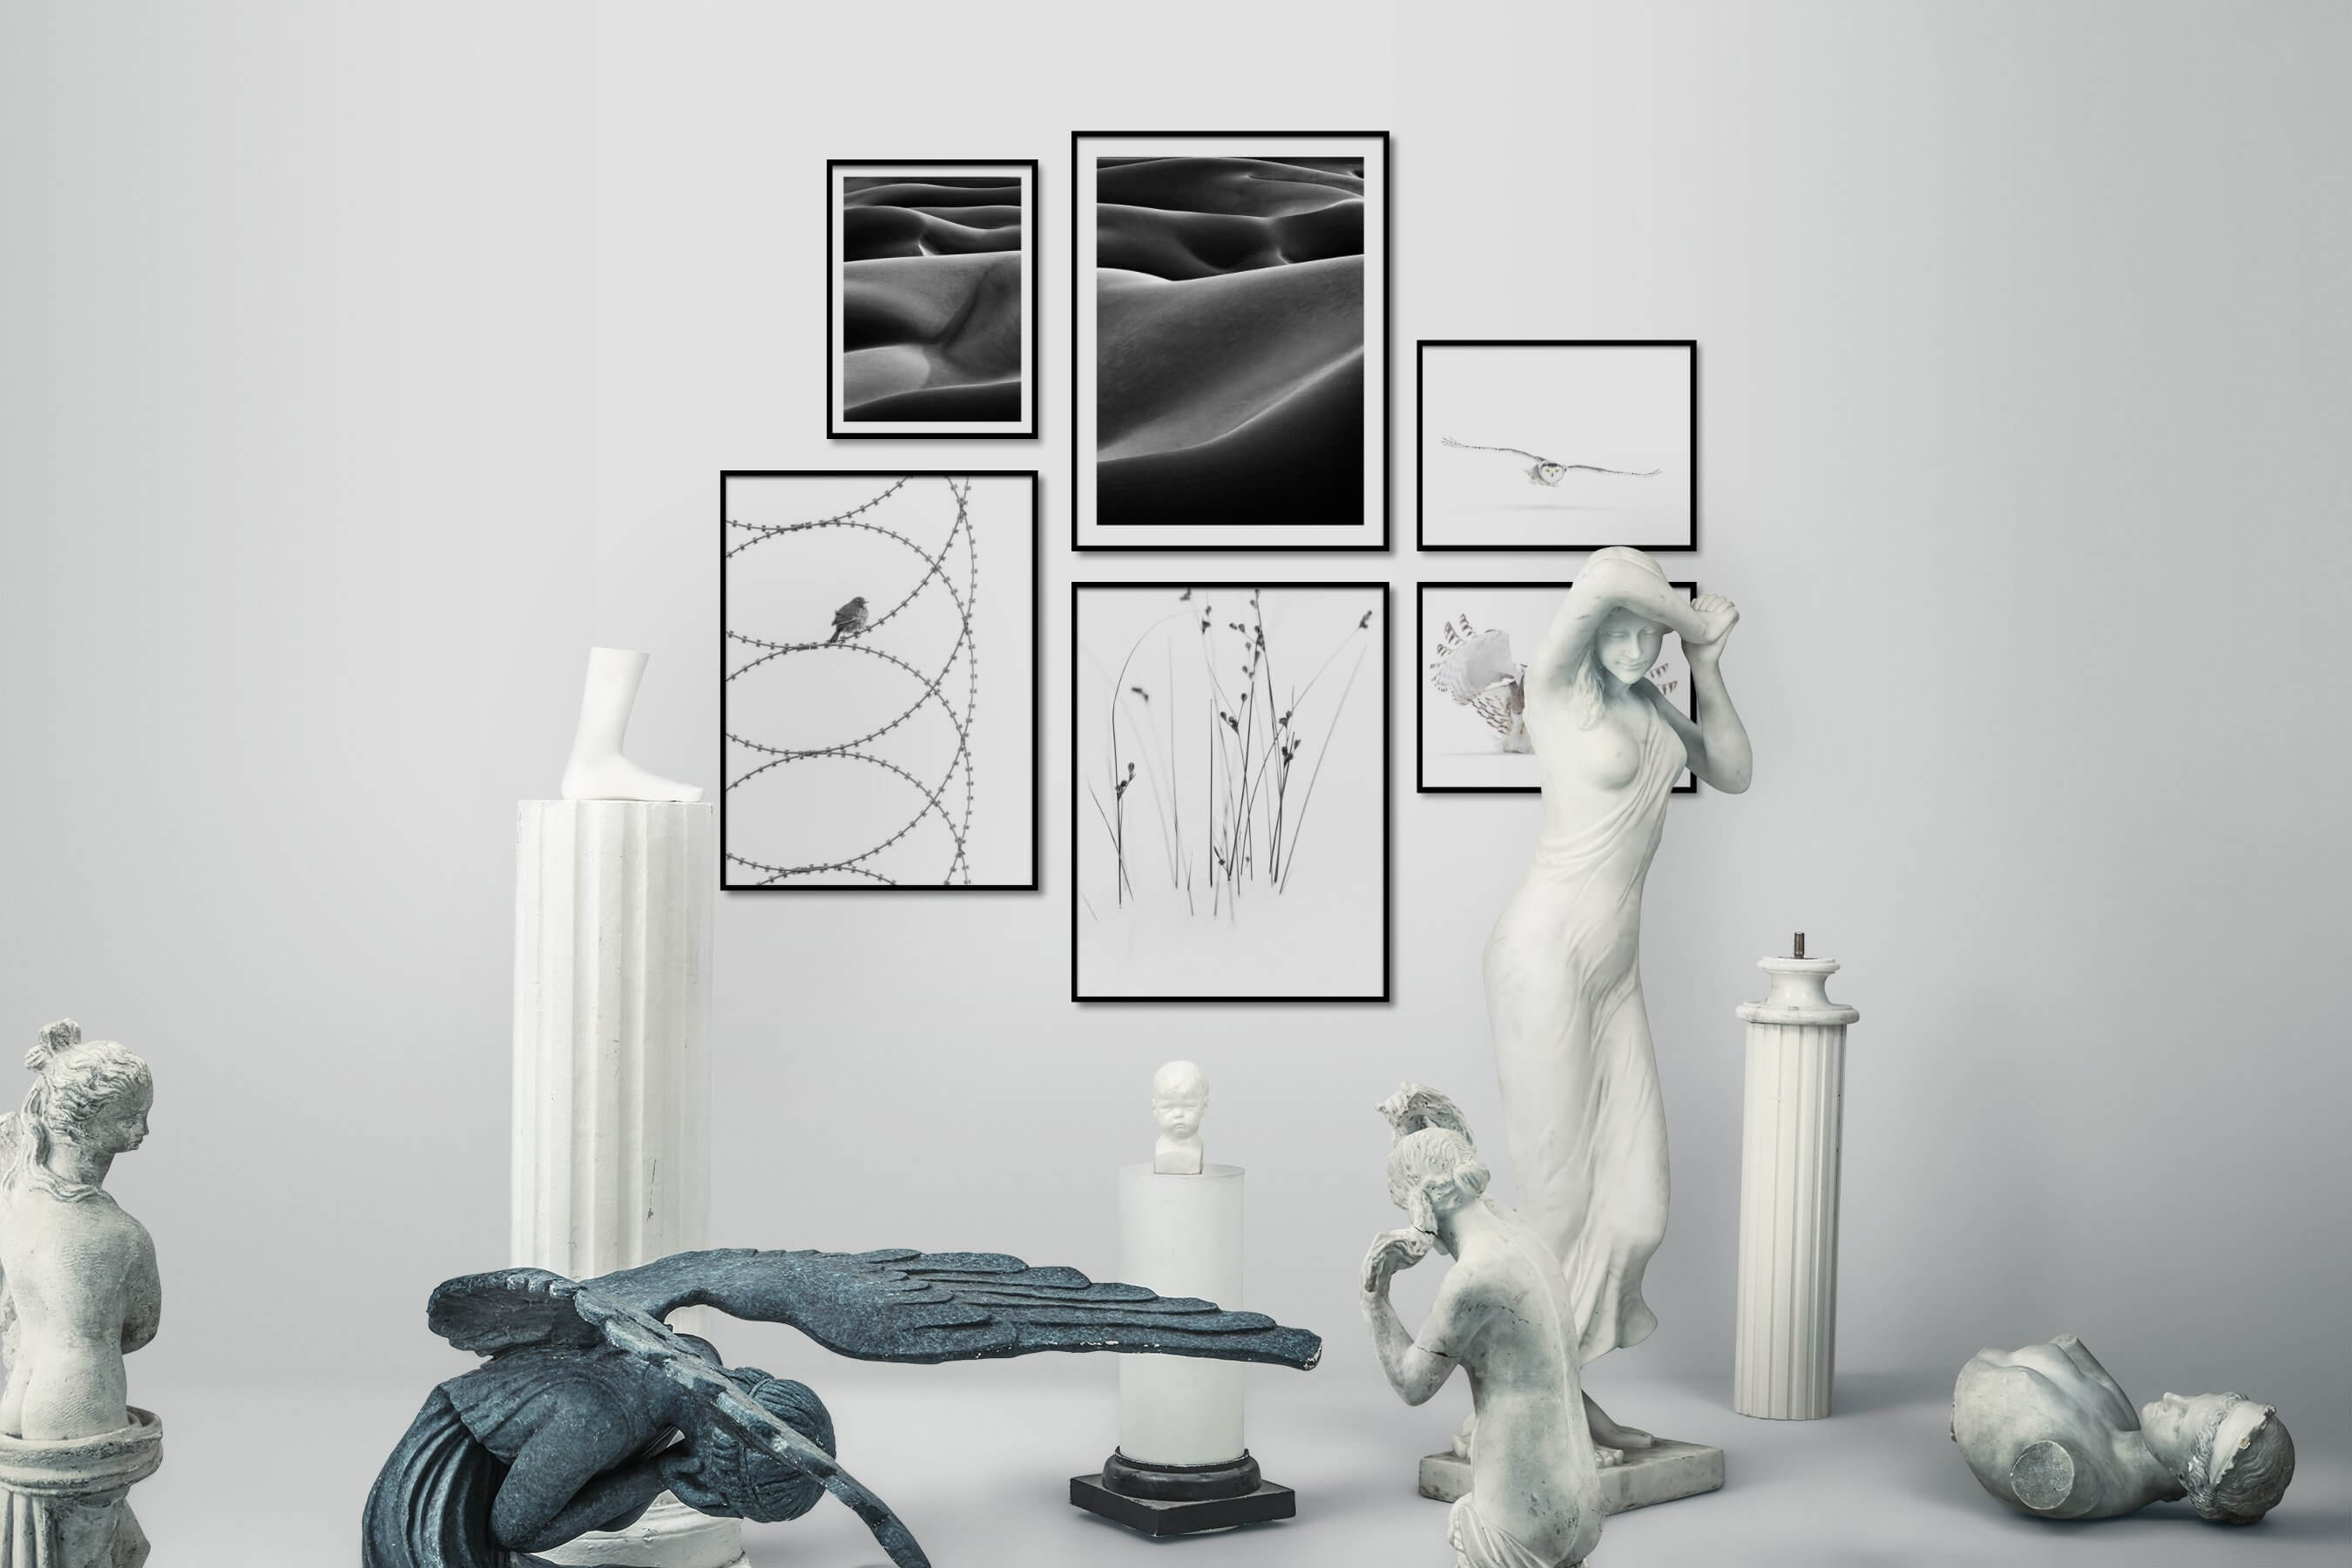 Gallery wall idea with six framed pictures arranged on a wall depicting Black & White, For the Moderate, Nature, Bright Tones, Animals, For the Minimalist, Flowers & Plants, and Mindfulness